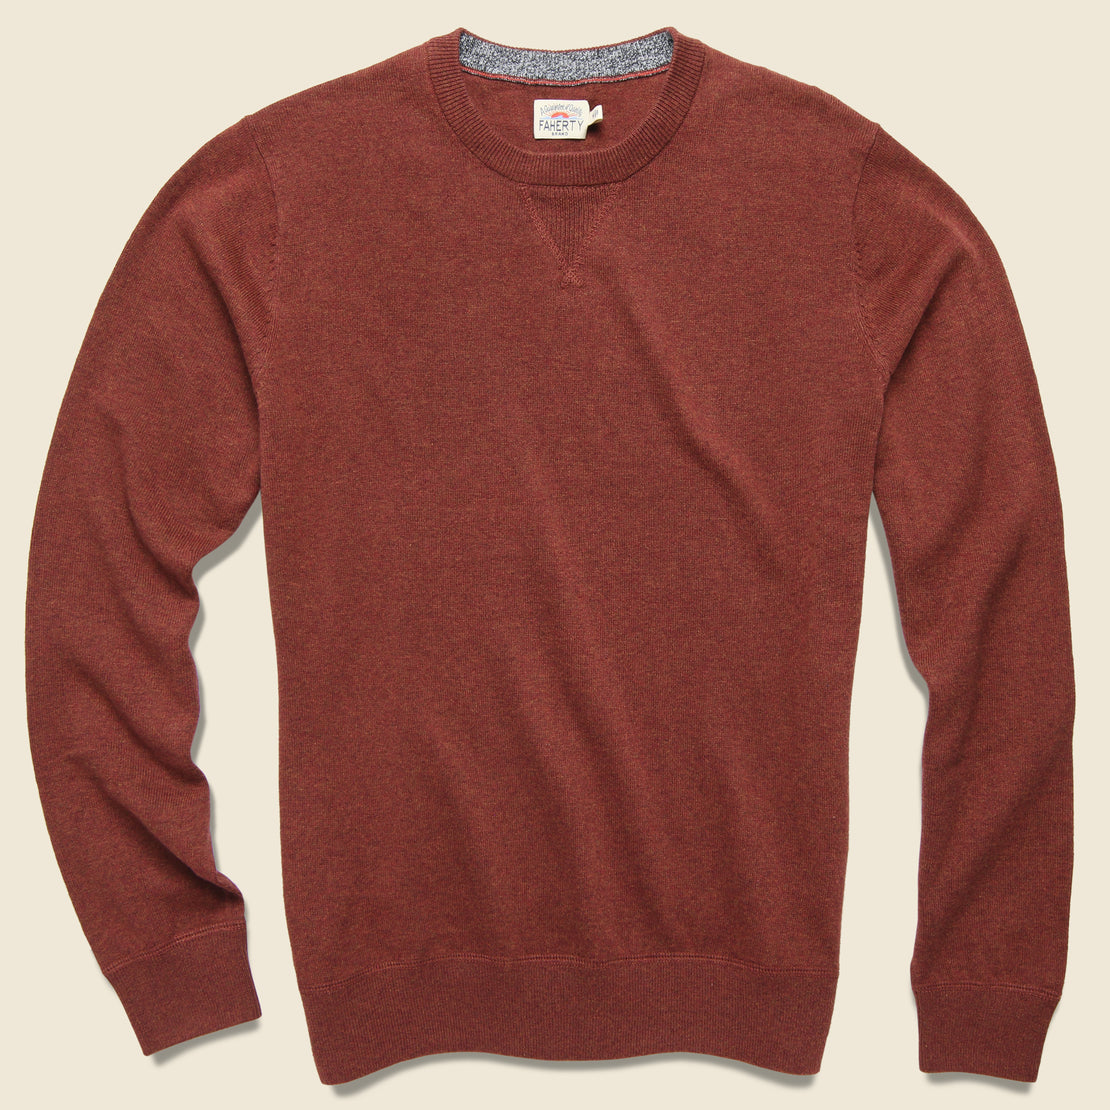 Faherty Sconset Crew Sweater - Autumn Rust